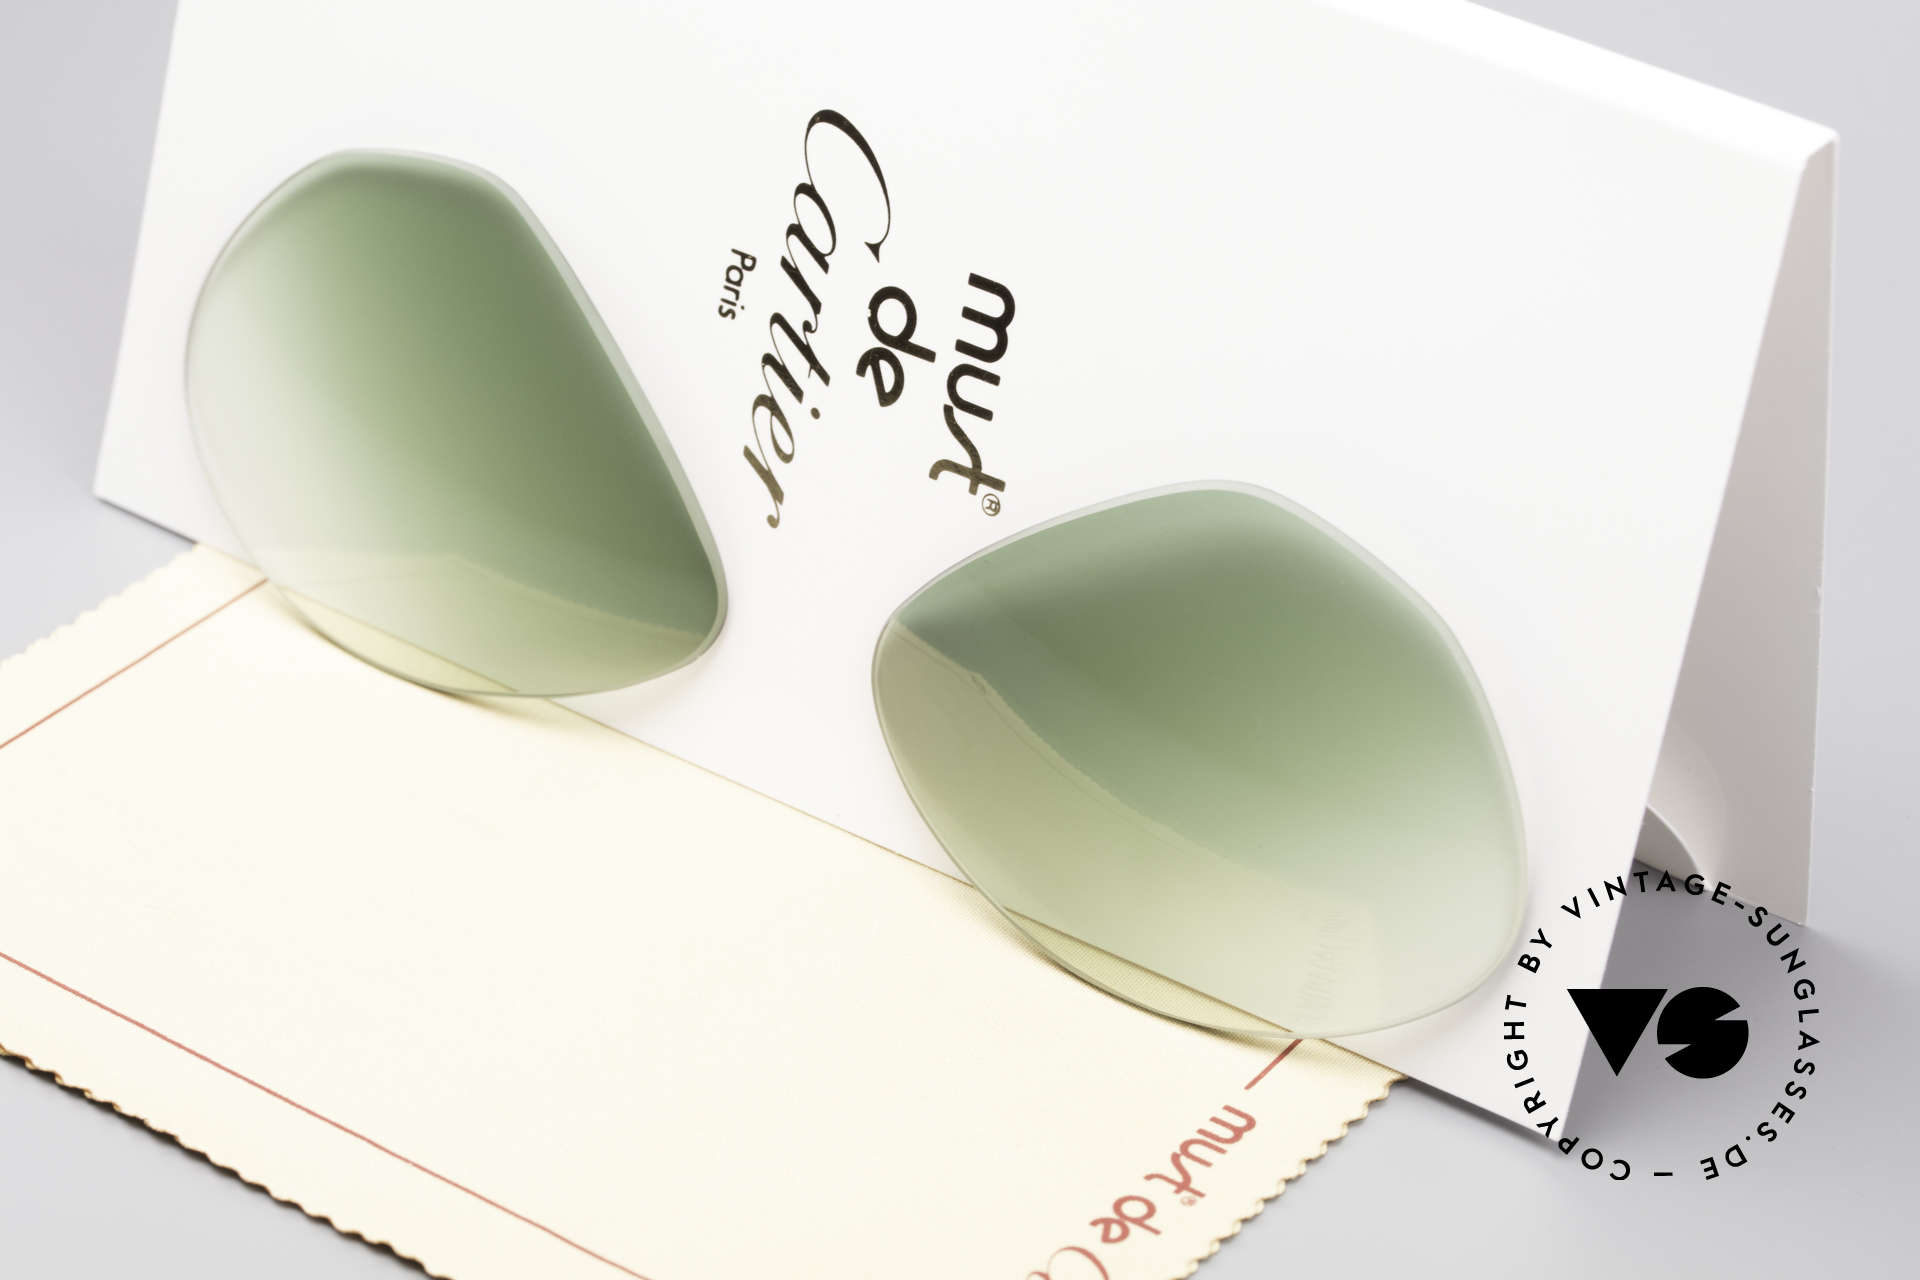 Cartier Vendome Lenses - M Sun Lenses Green Gradient, new CR39 UV400 plastic lenses (for 100% UV protection), Made for Men and Women